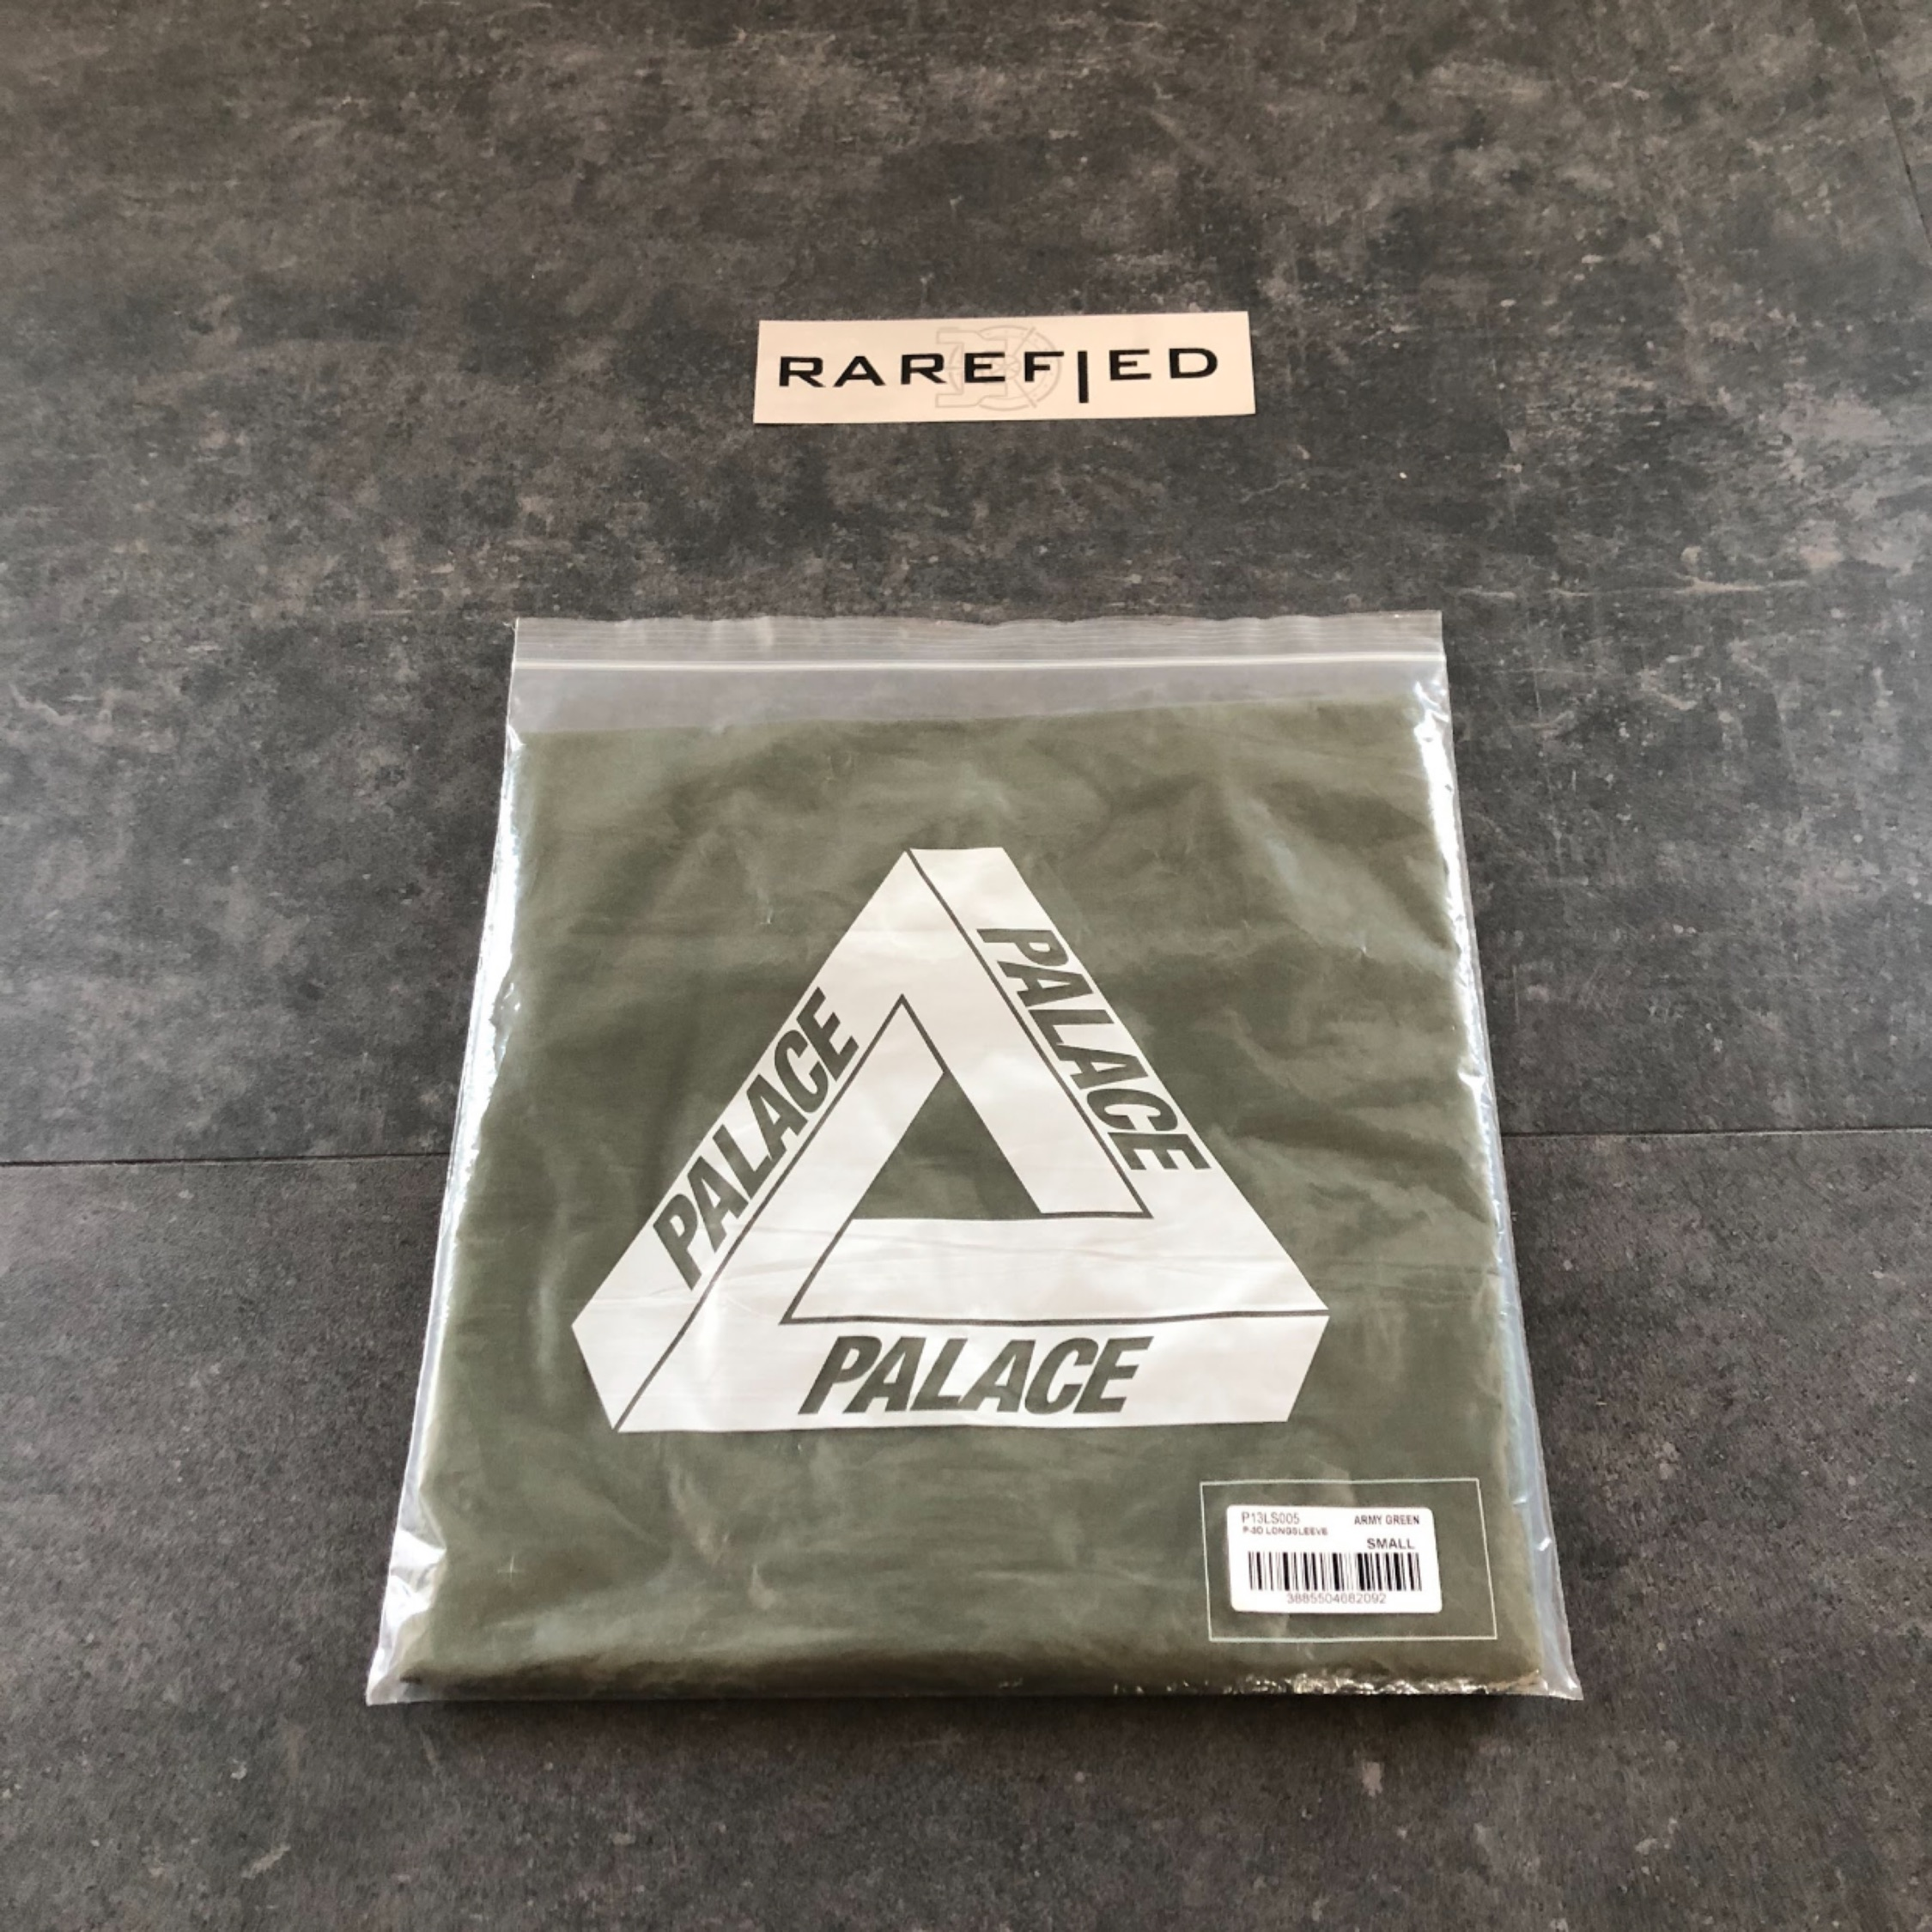 Palace L/S Green Small